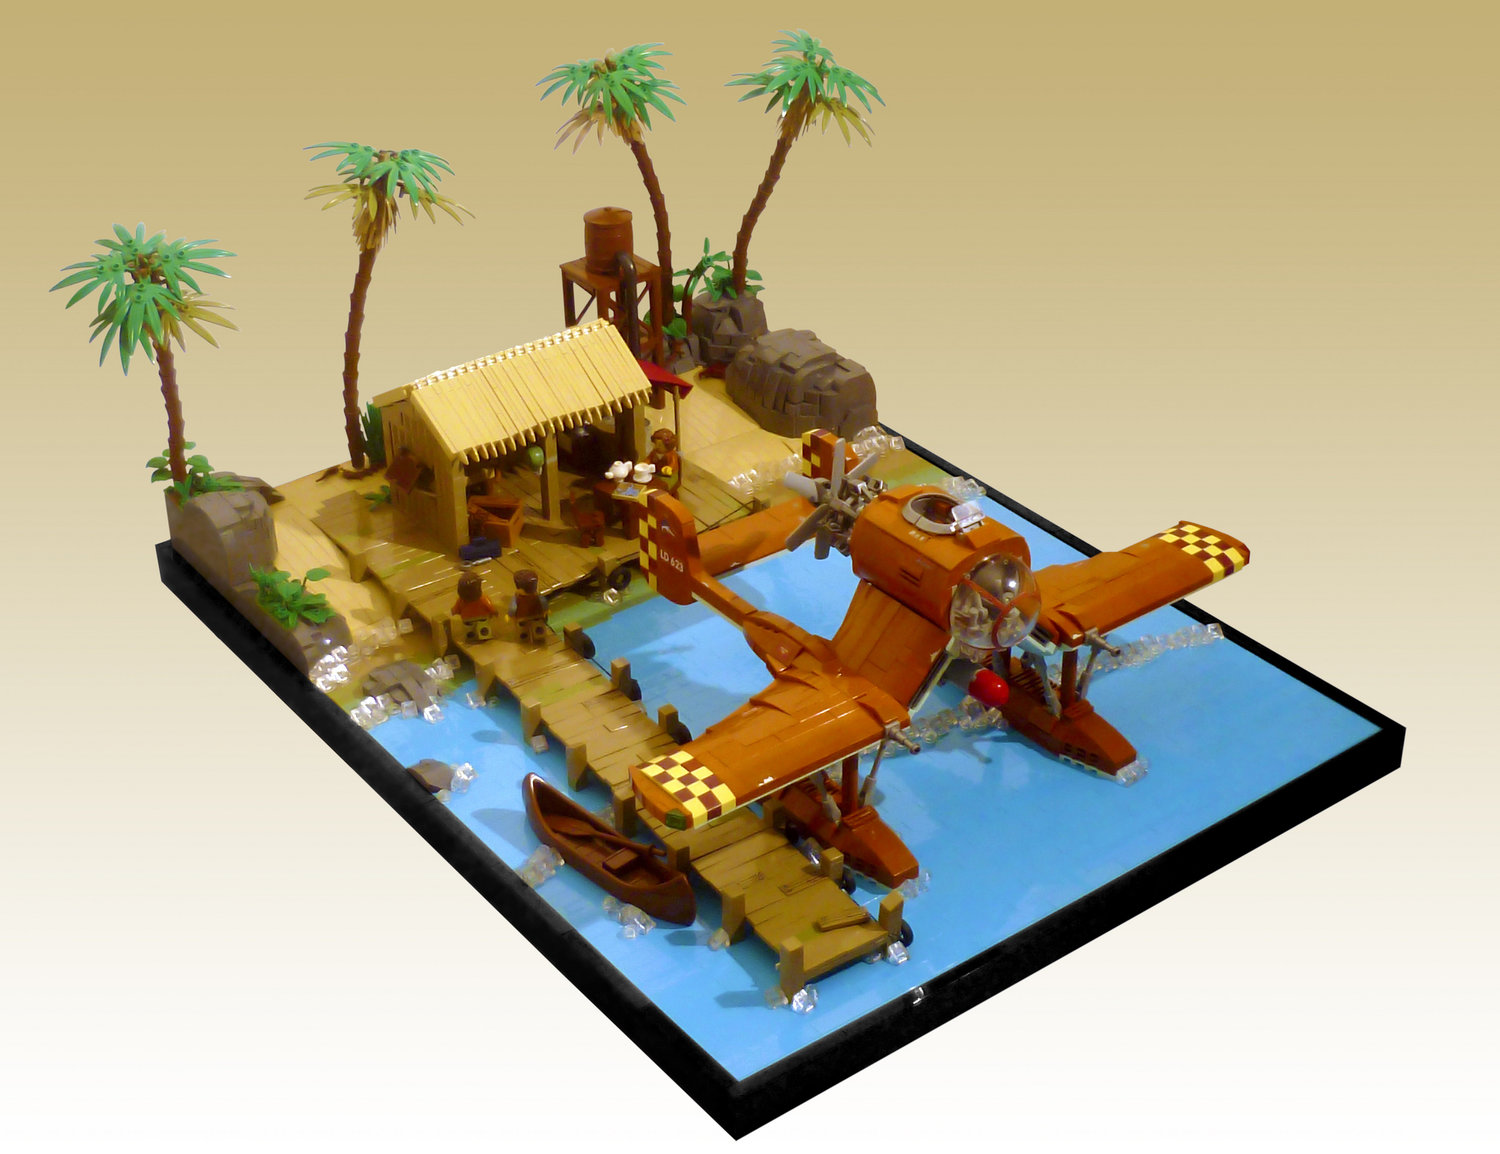 Gaunt - BrickNerd - Your place for all things LEGO and the